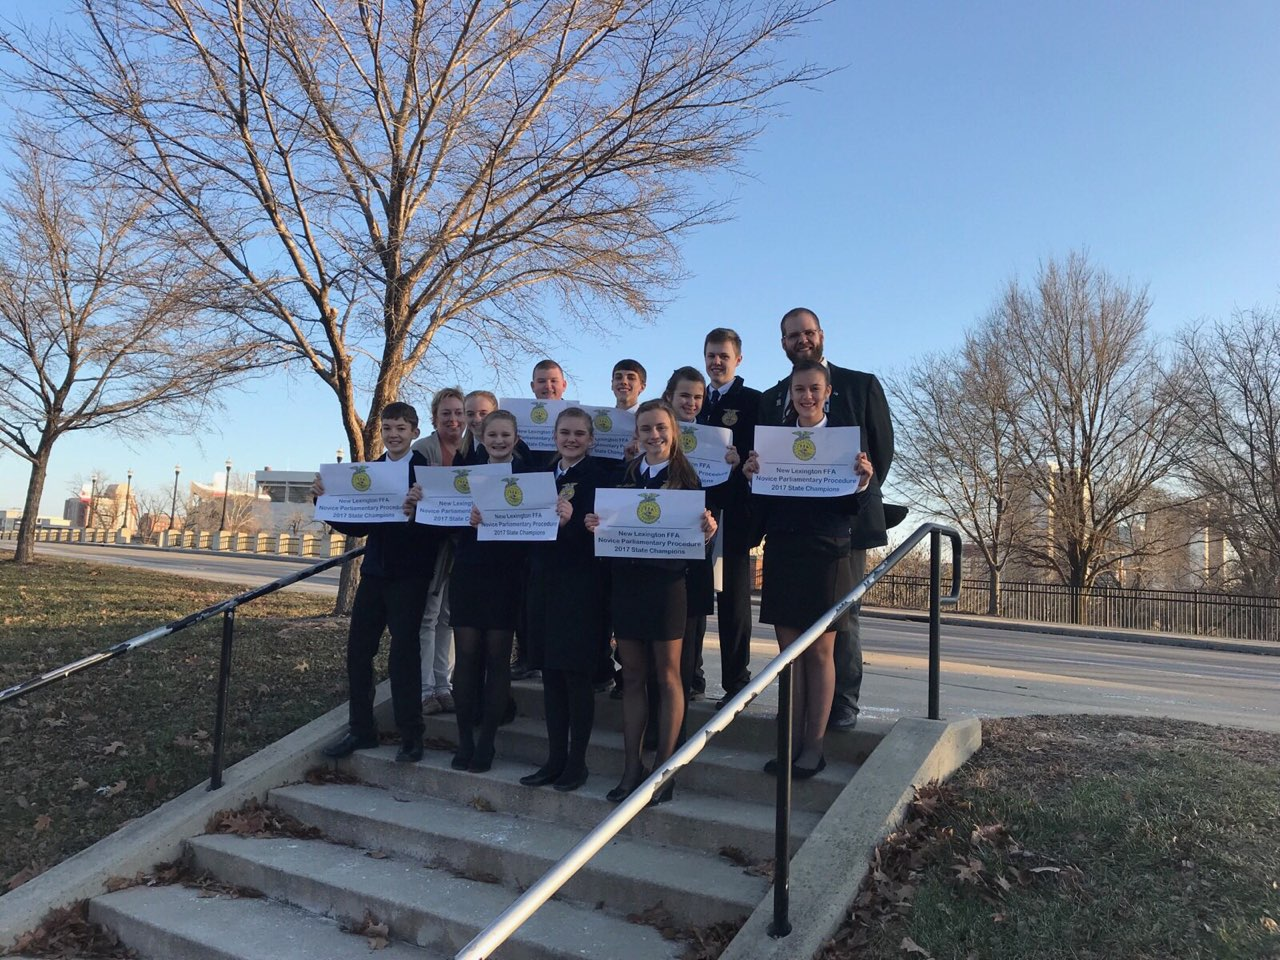 Novice Parli-Pro brings home a 3rd straight State Championship!